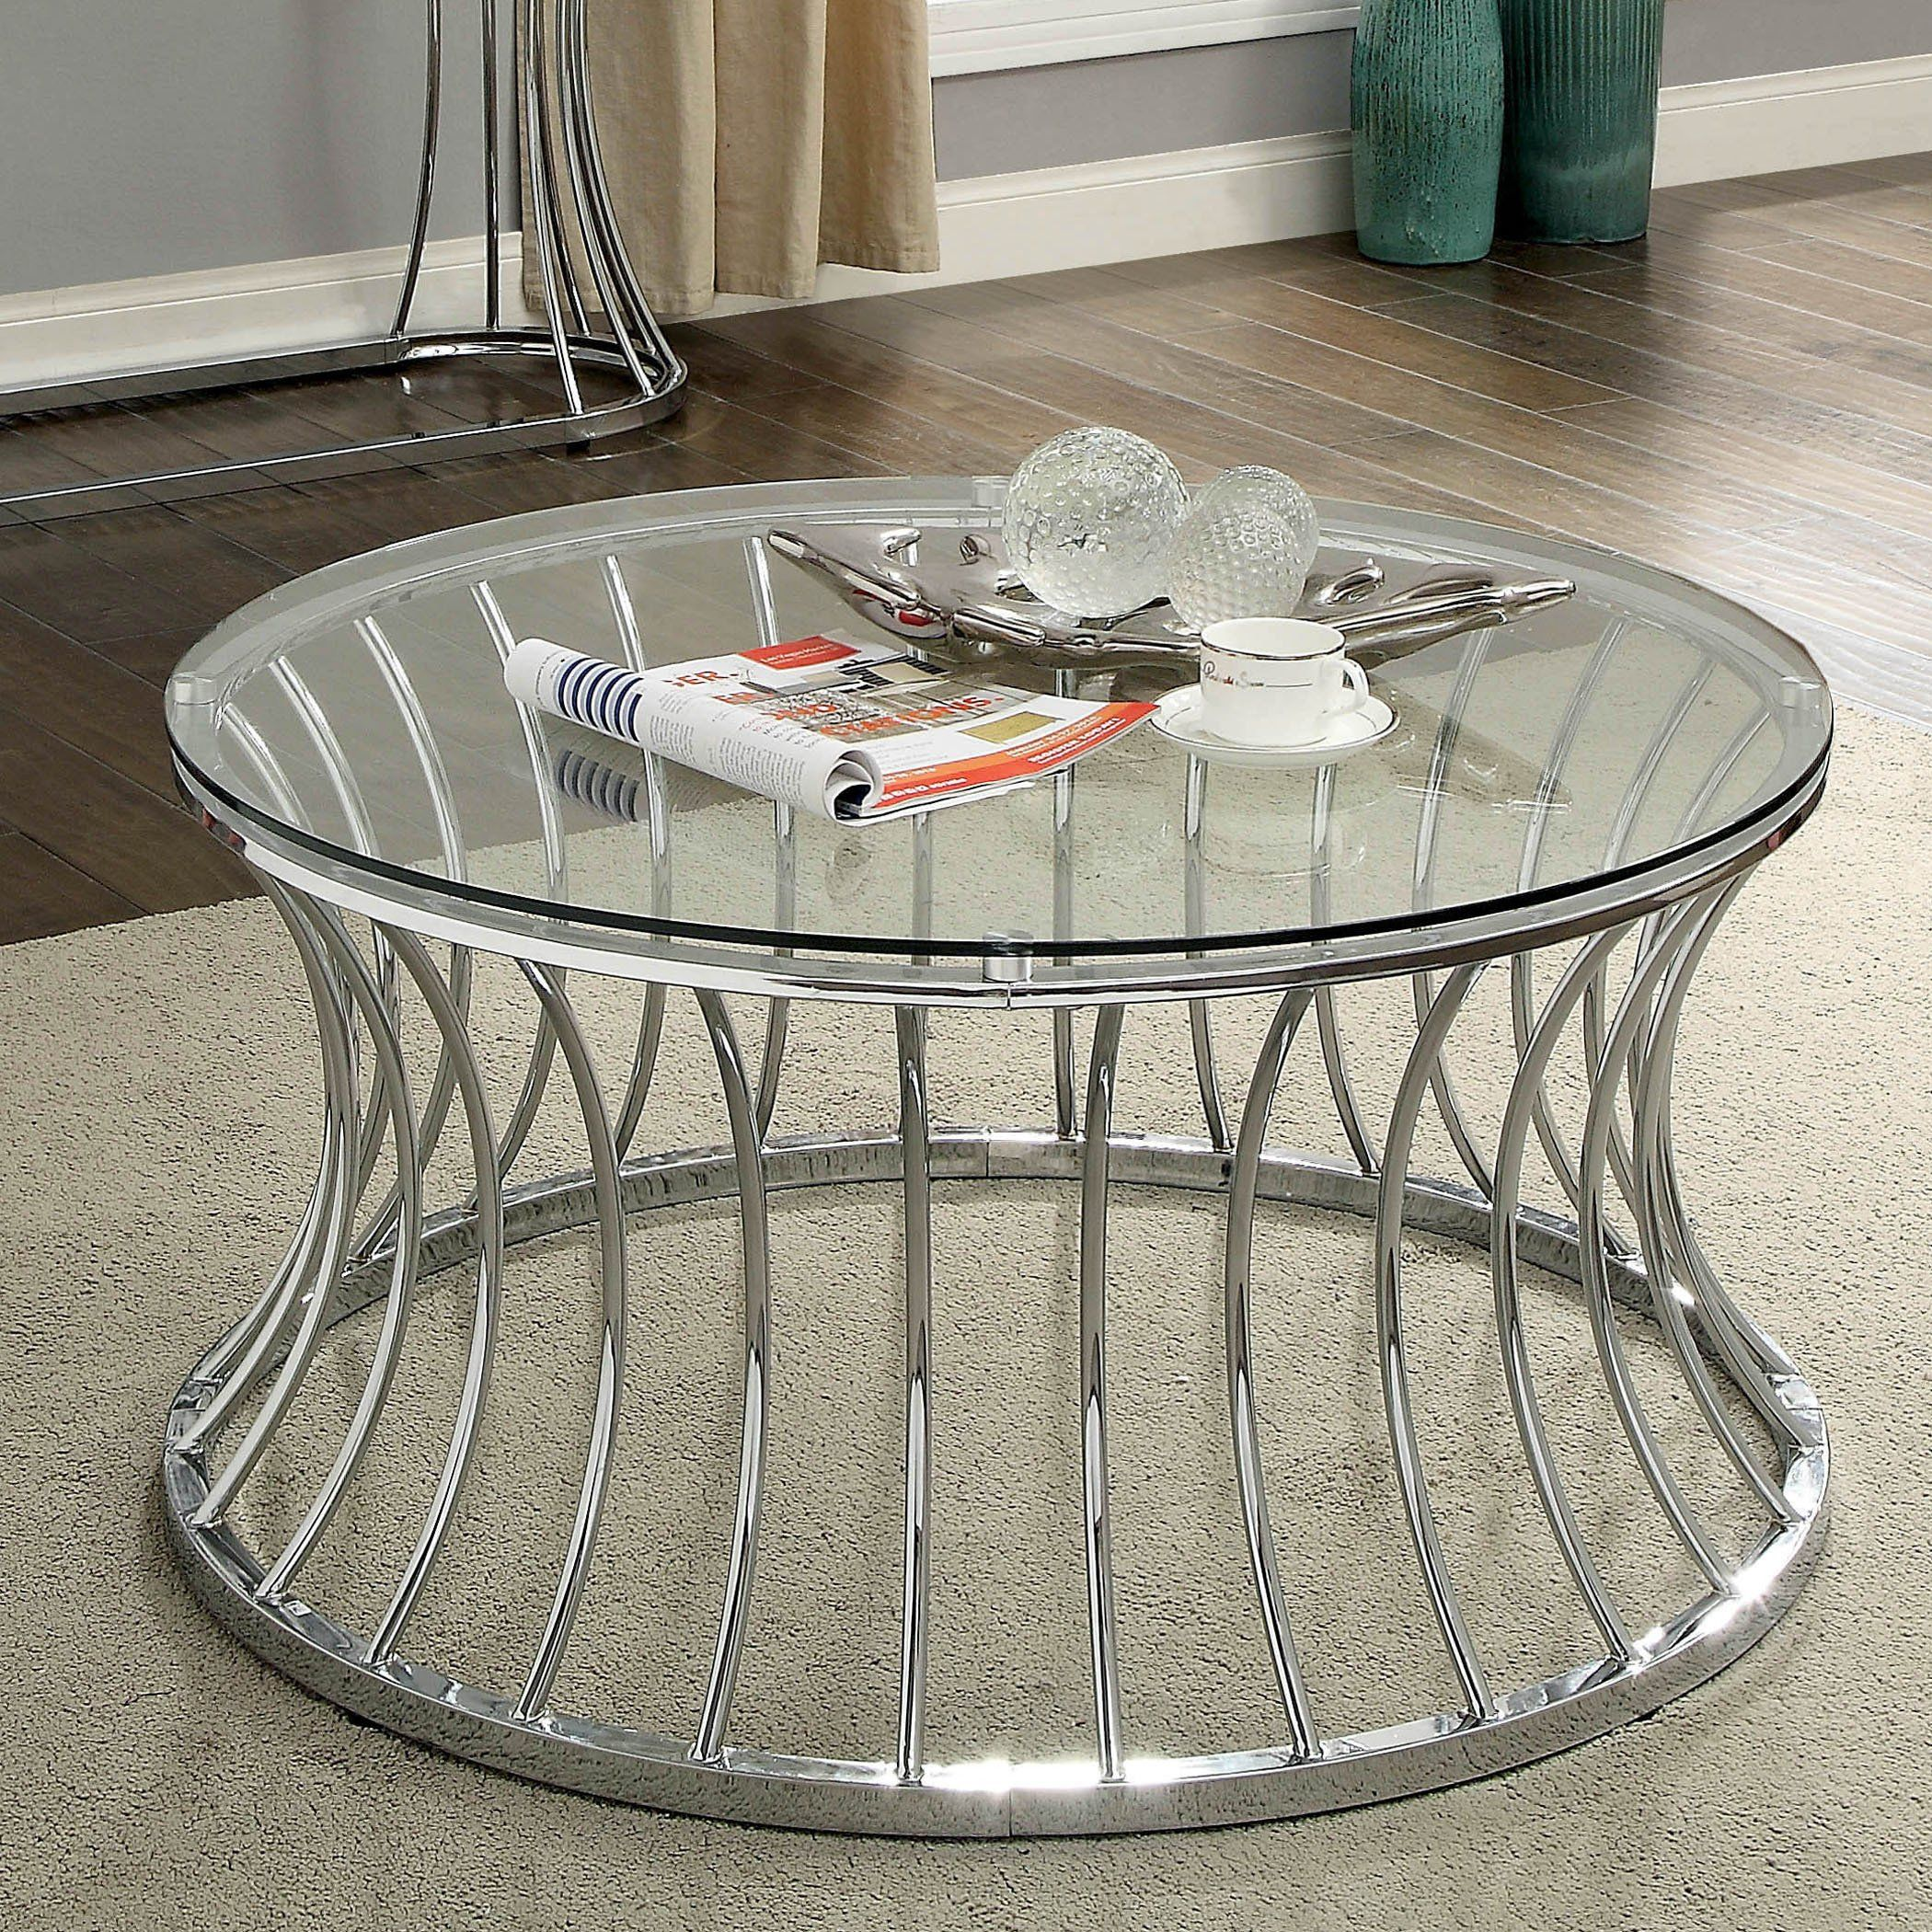 Furniture Of America Breckenwald Contemporary Round Coffee Table Chrome Silver Round Metal Coffee Table Coffee Table Round Coffee Table [ 2100 x 2100 Pixel ]